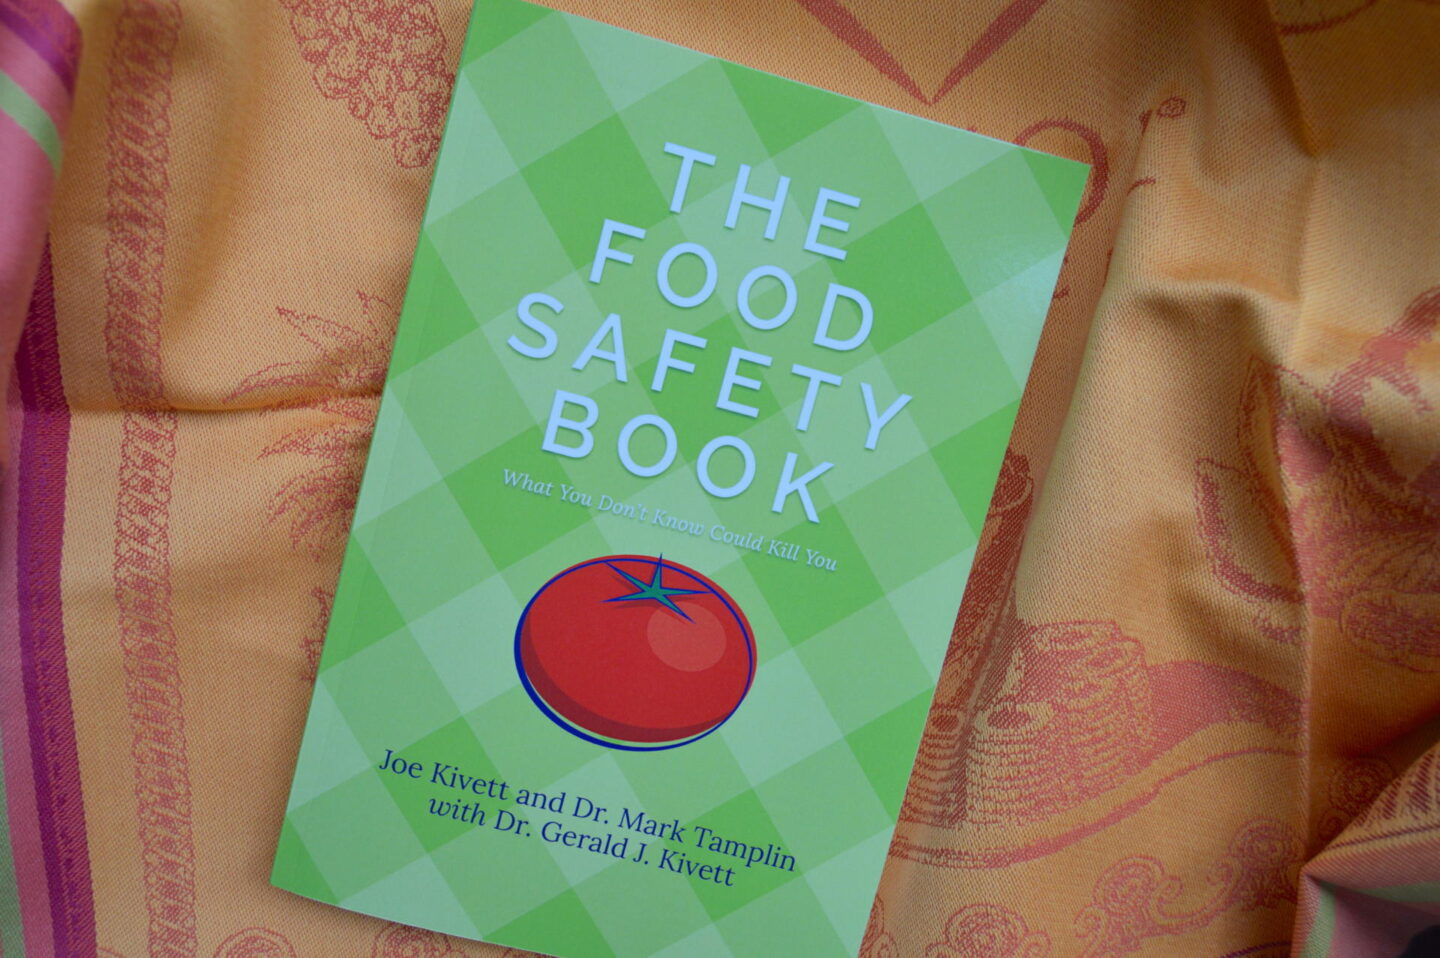 The Food Safety Book Giveaway